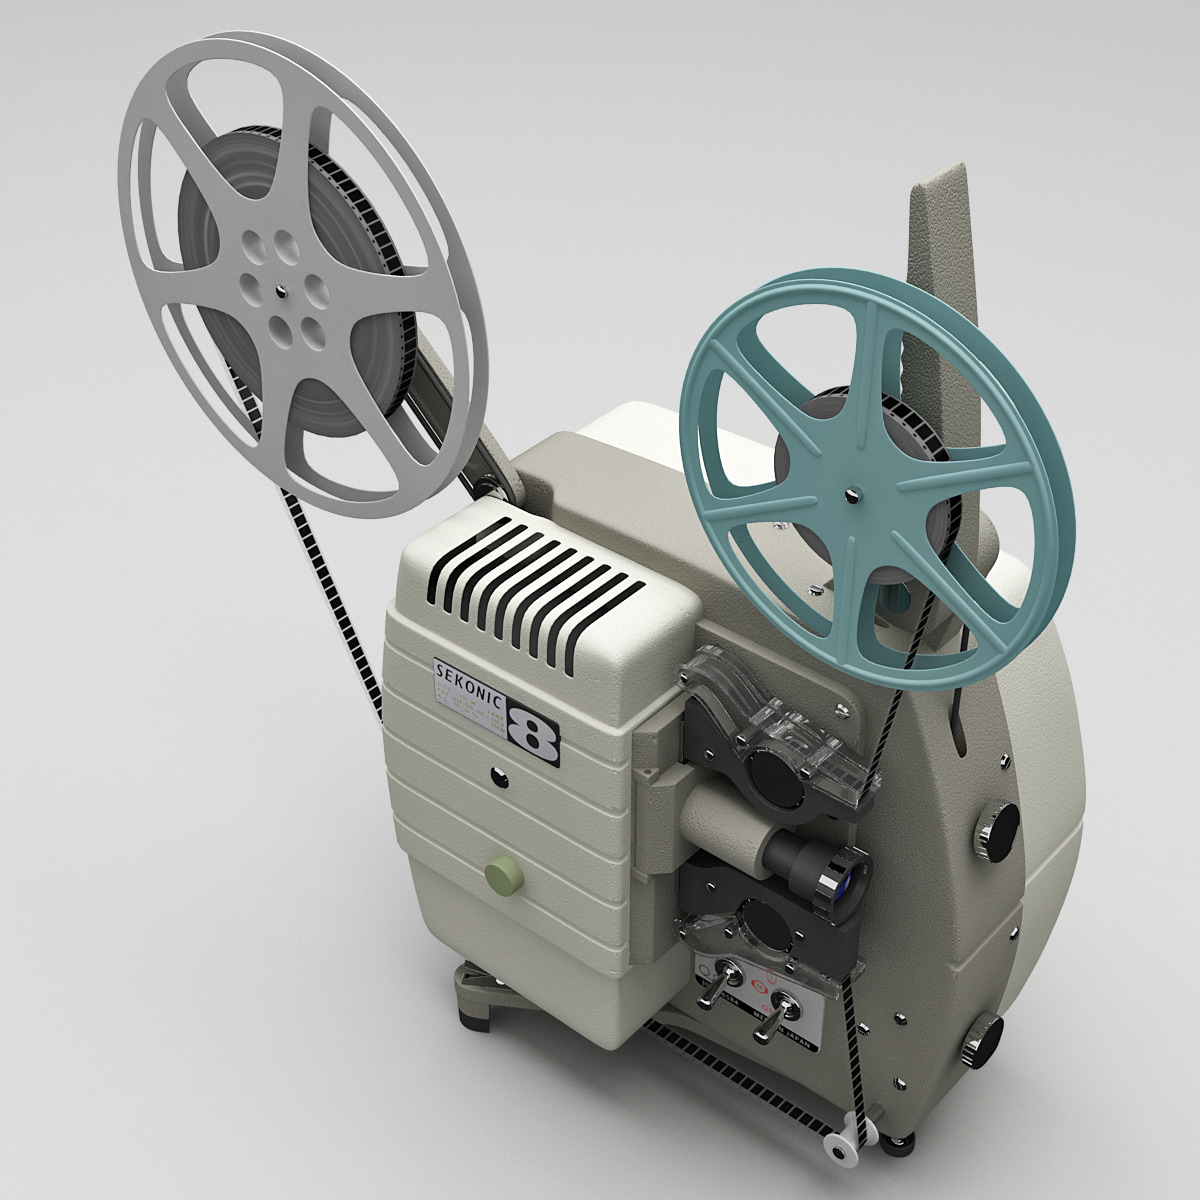 Vintage_Projector_Sekonic_Model_30C_8mm_0001.jpg